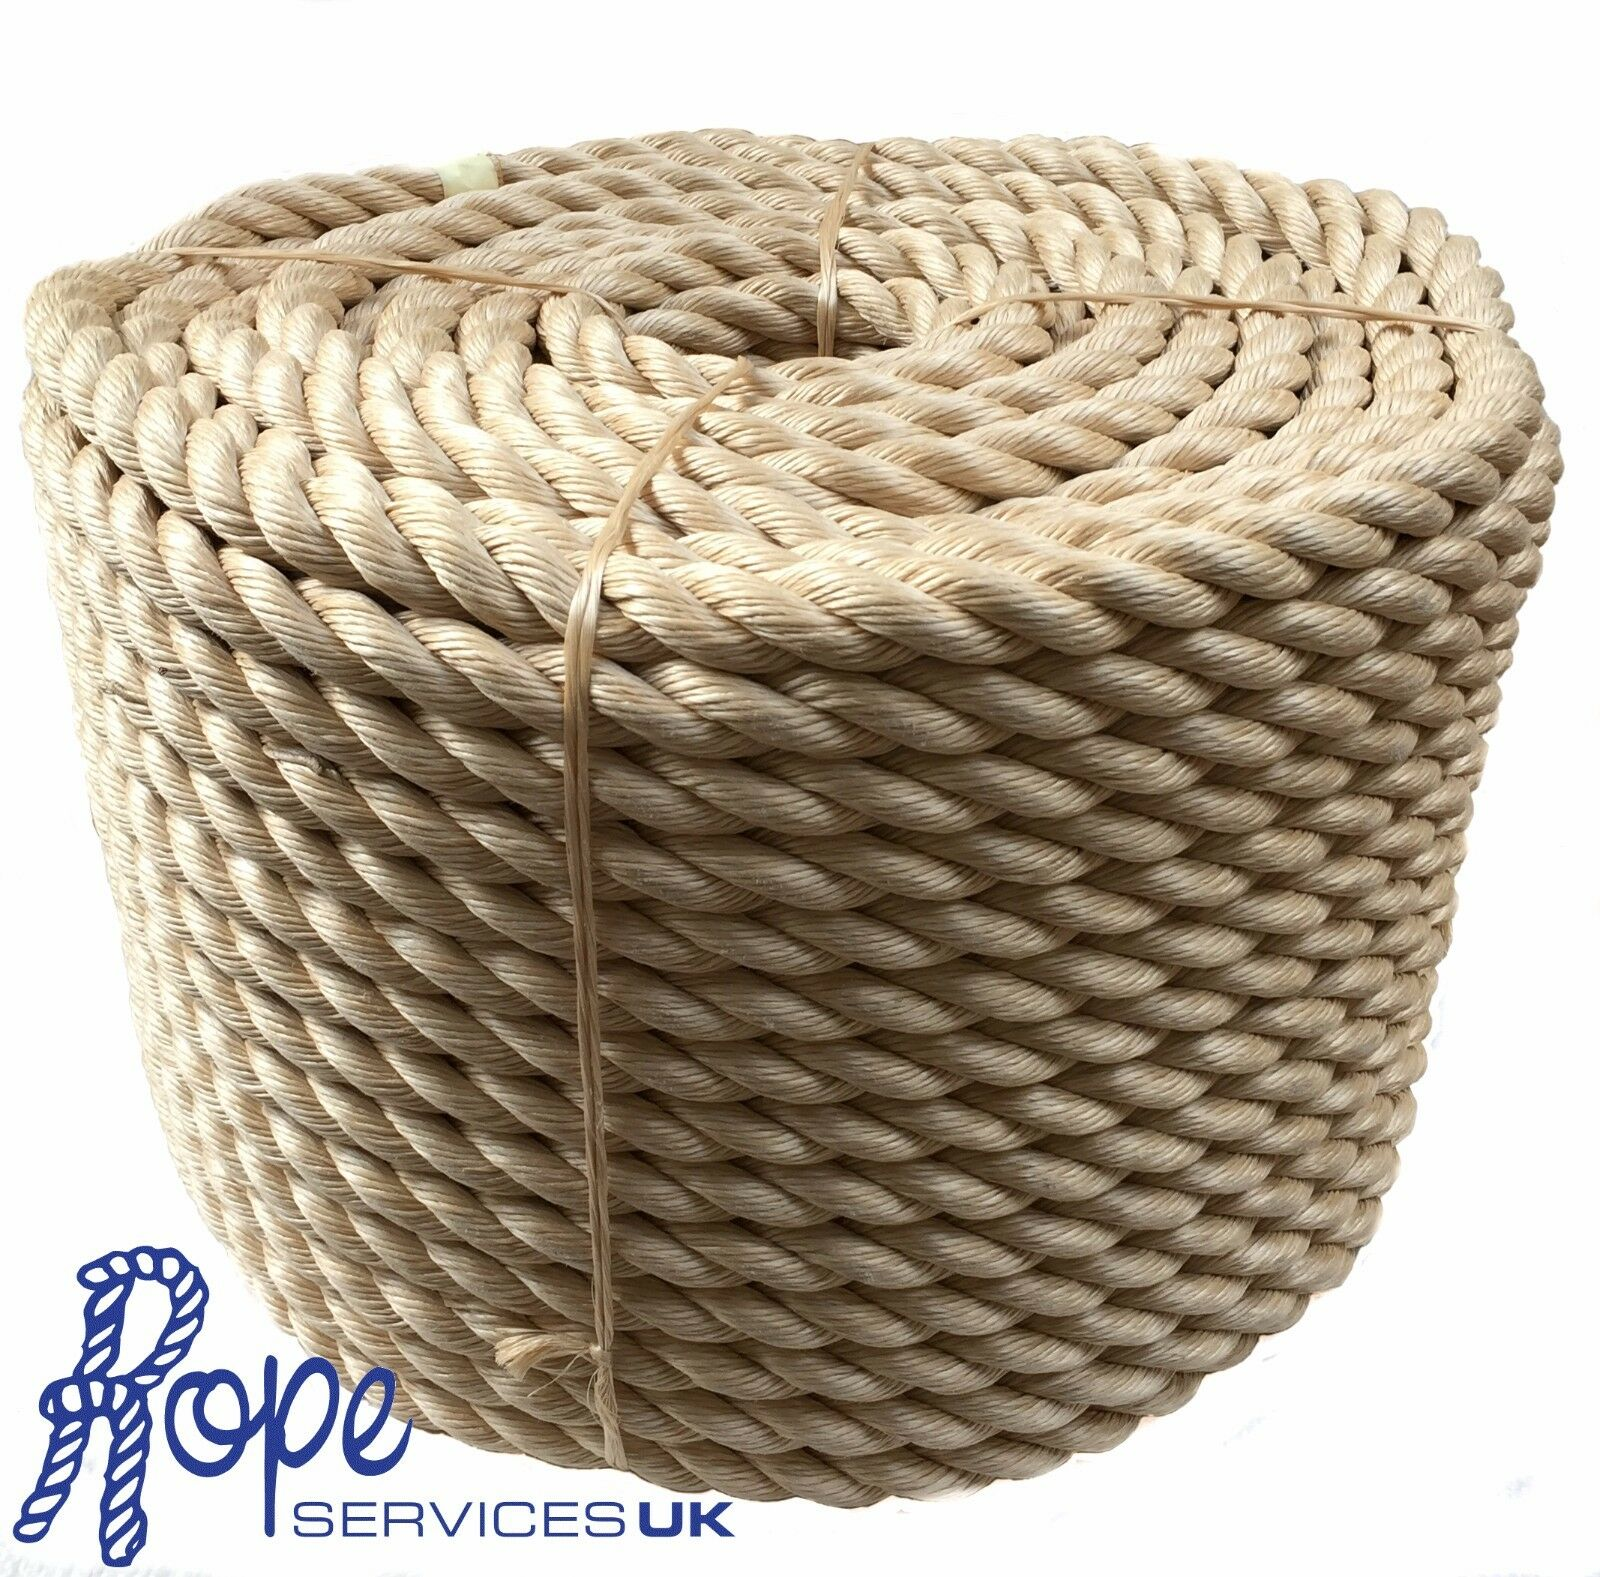 24mm x 50mts Rope - Synthetic Sisal, Sisal,For Decking, Garden & Boating,